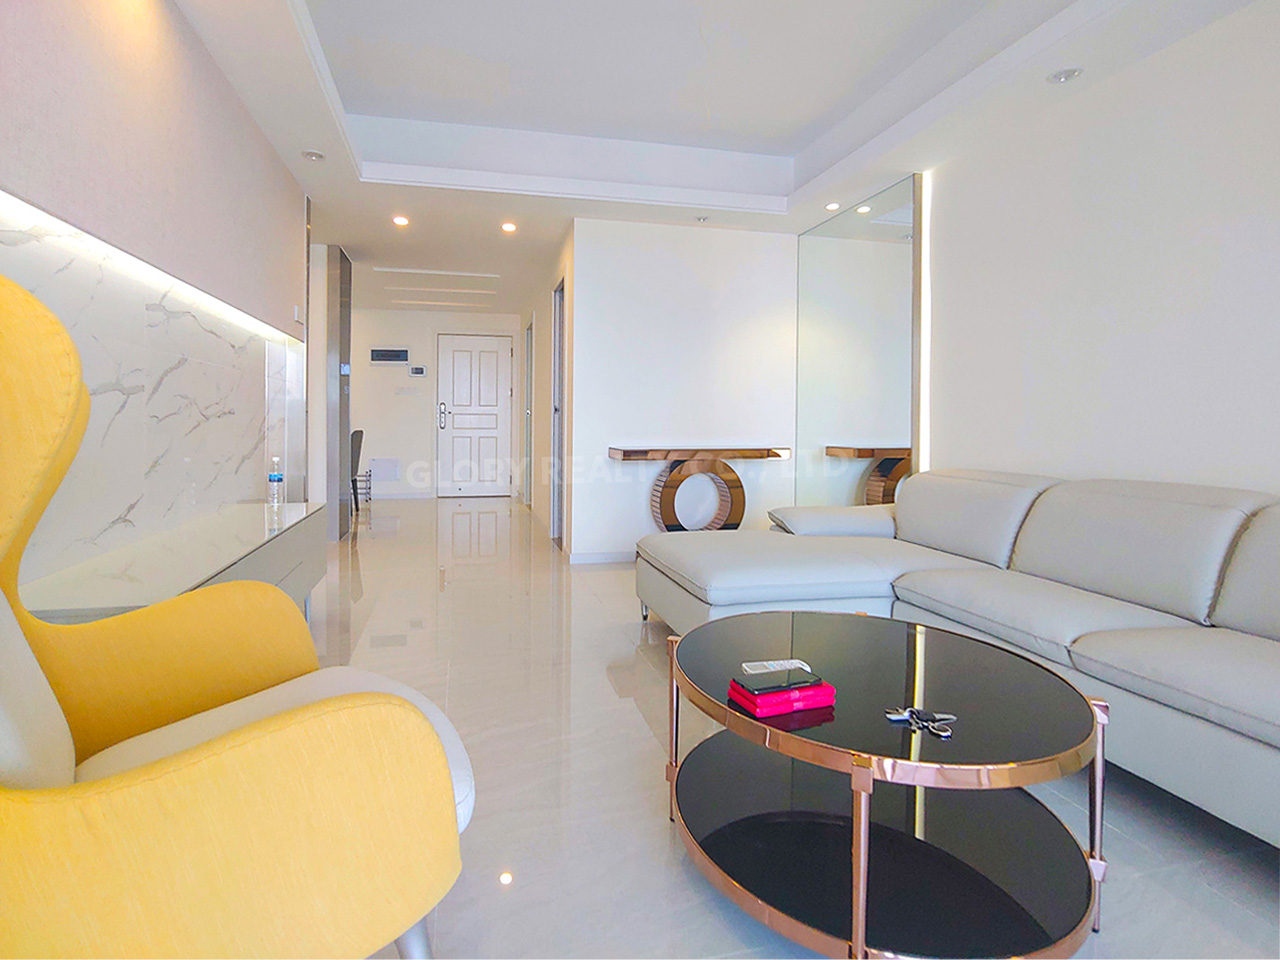 2 Bedrooms condo unit for rent at Sky31 Toul Kork area